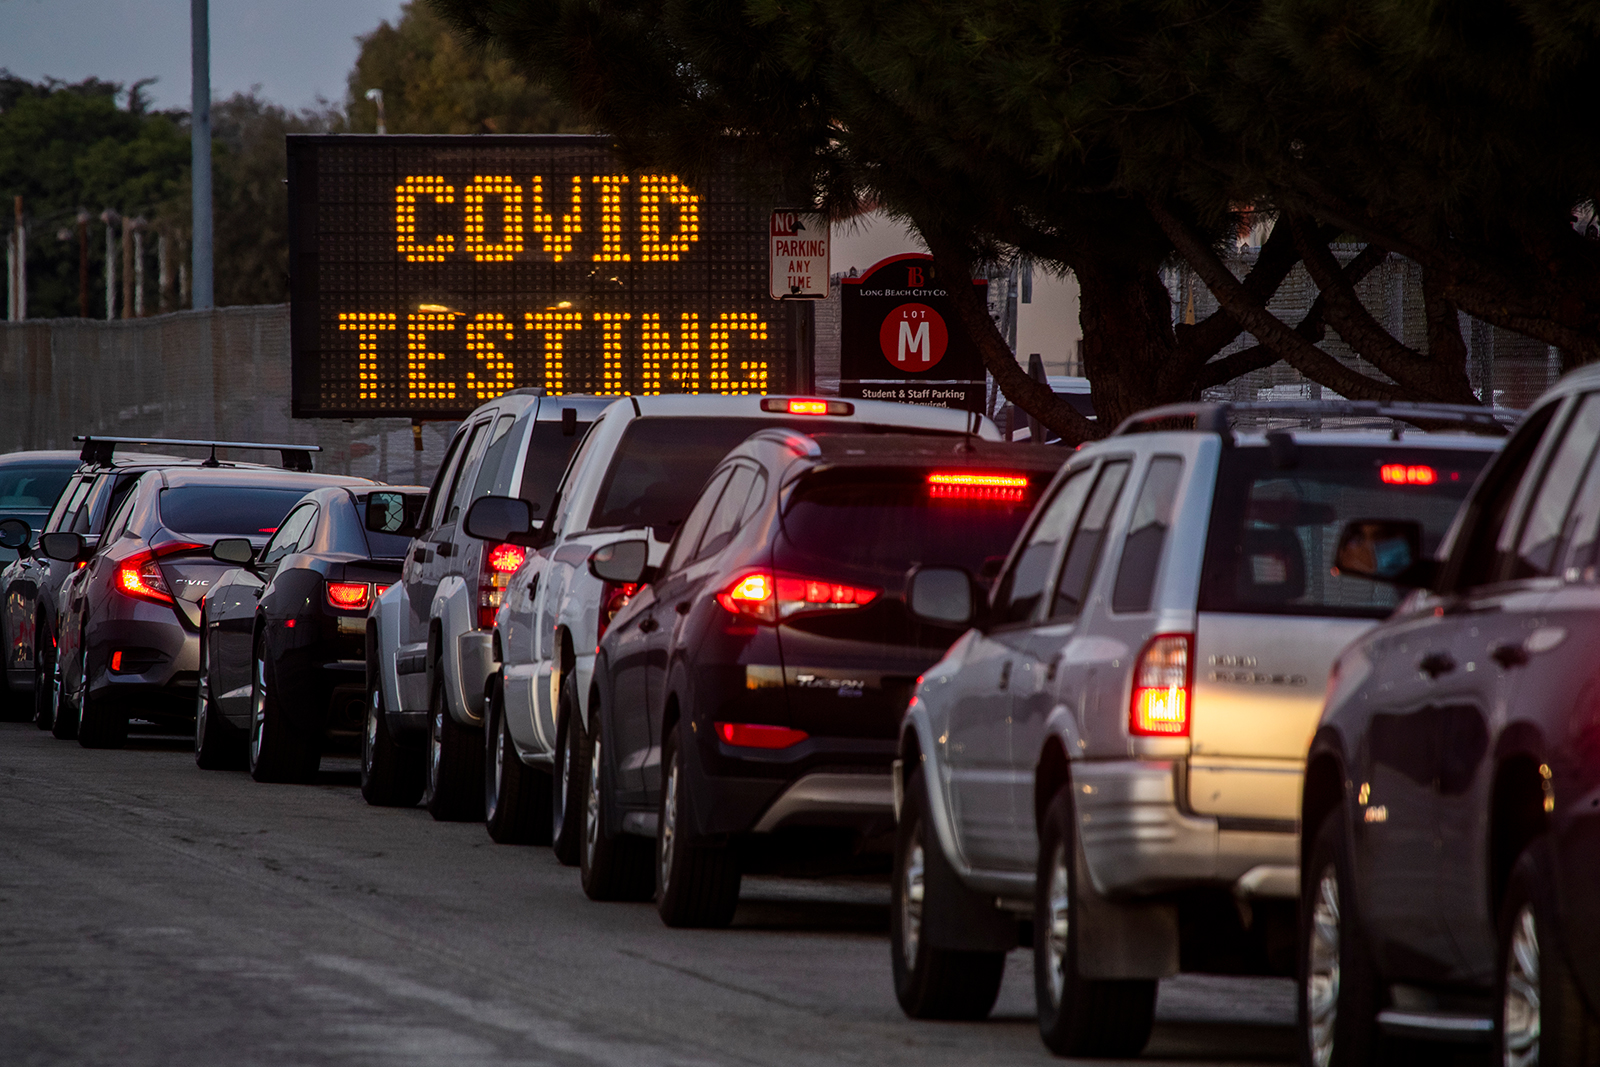 A long line of vehicles line up to take Covid-19 tests at Long Beach City College-Veterans Memorial Stadium in Long Beach, California, on December 9.